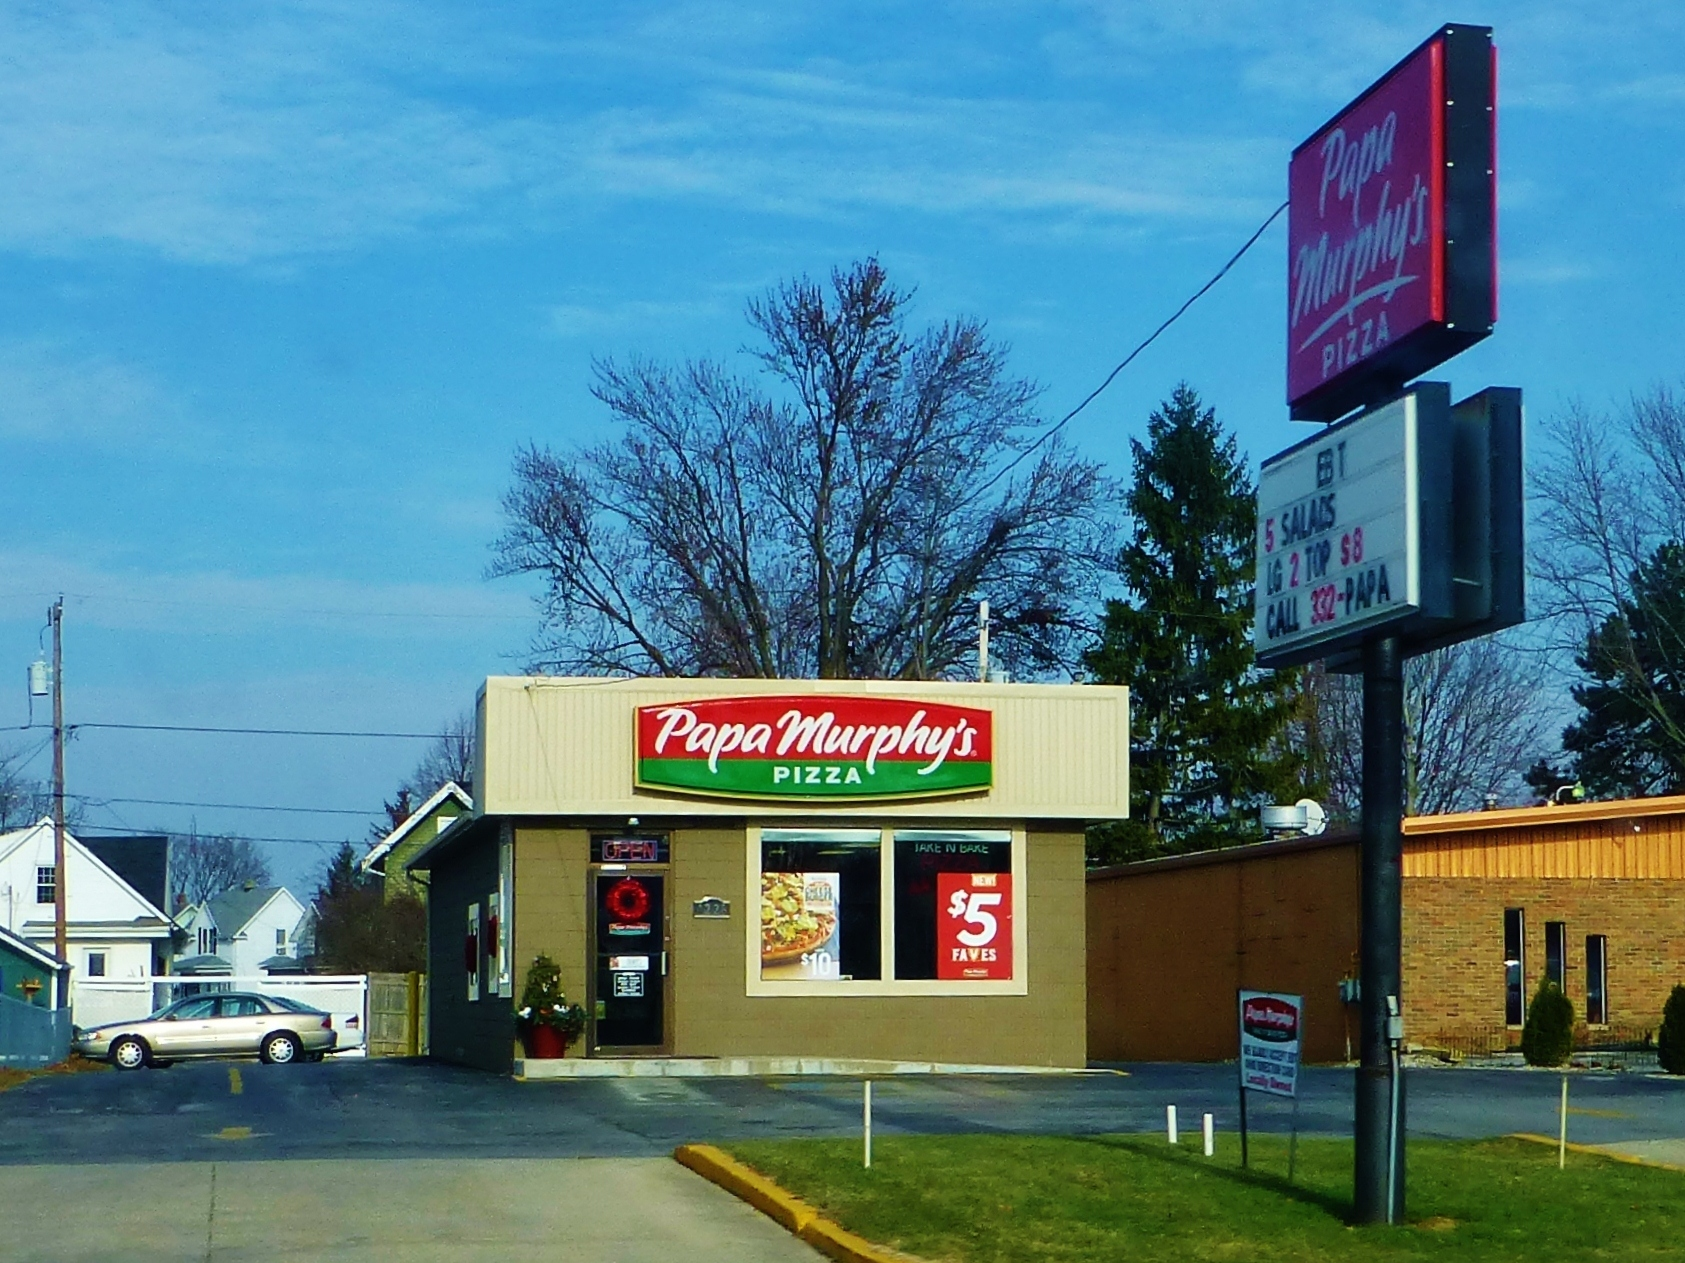 Papa Murphy's is a chain that sells take-and-bake pizza. It built its name on low prices, and a willingness to accept food stamps. But now that may be in jeopardy. Photo: Nicholas Eckhart/Flickr